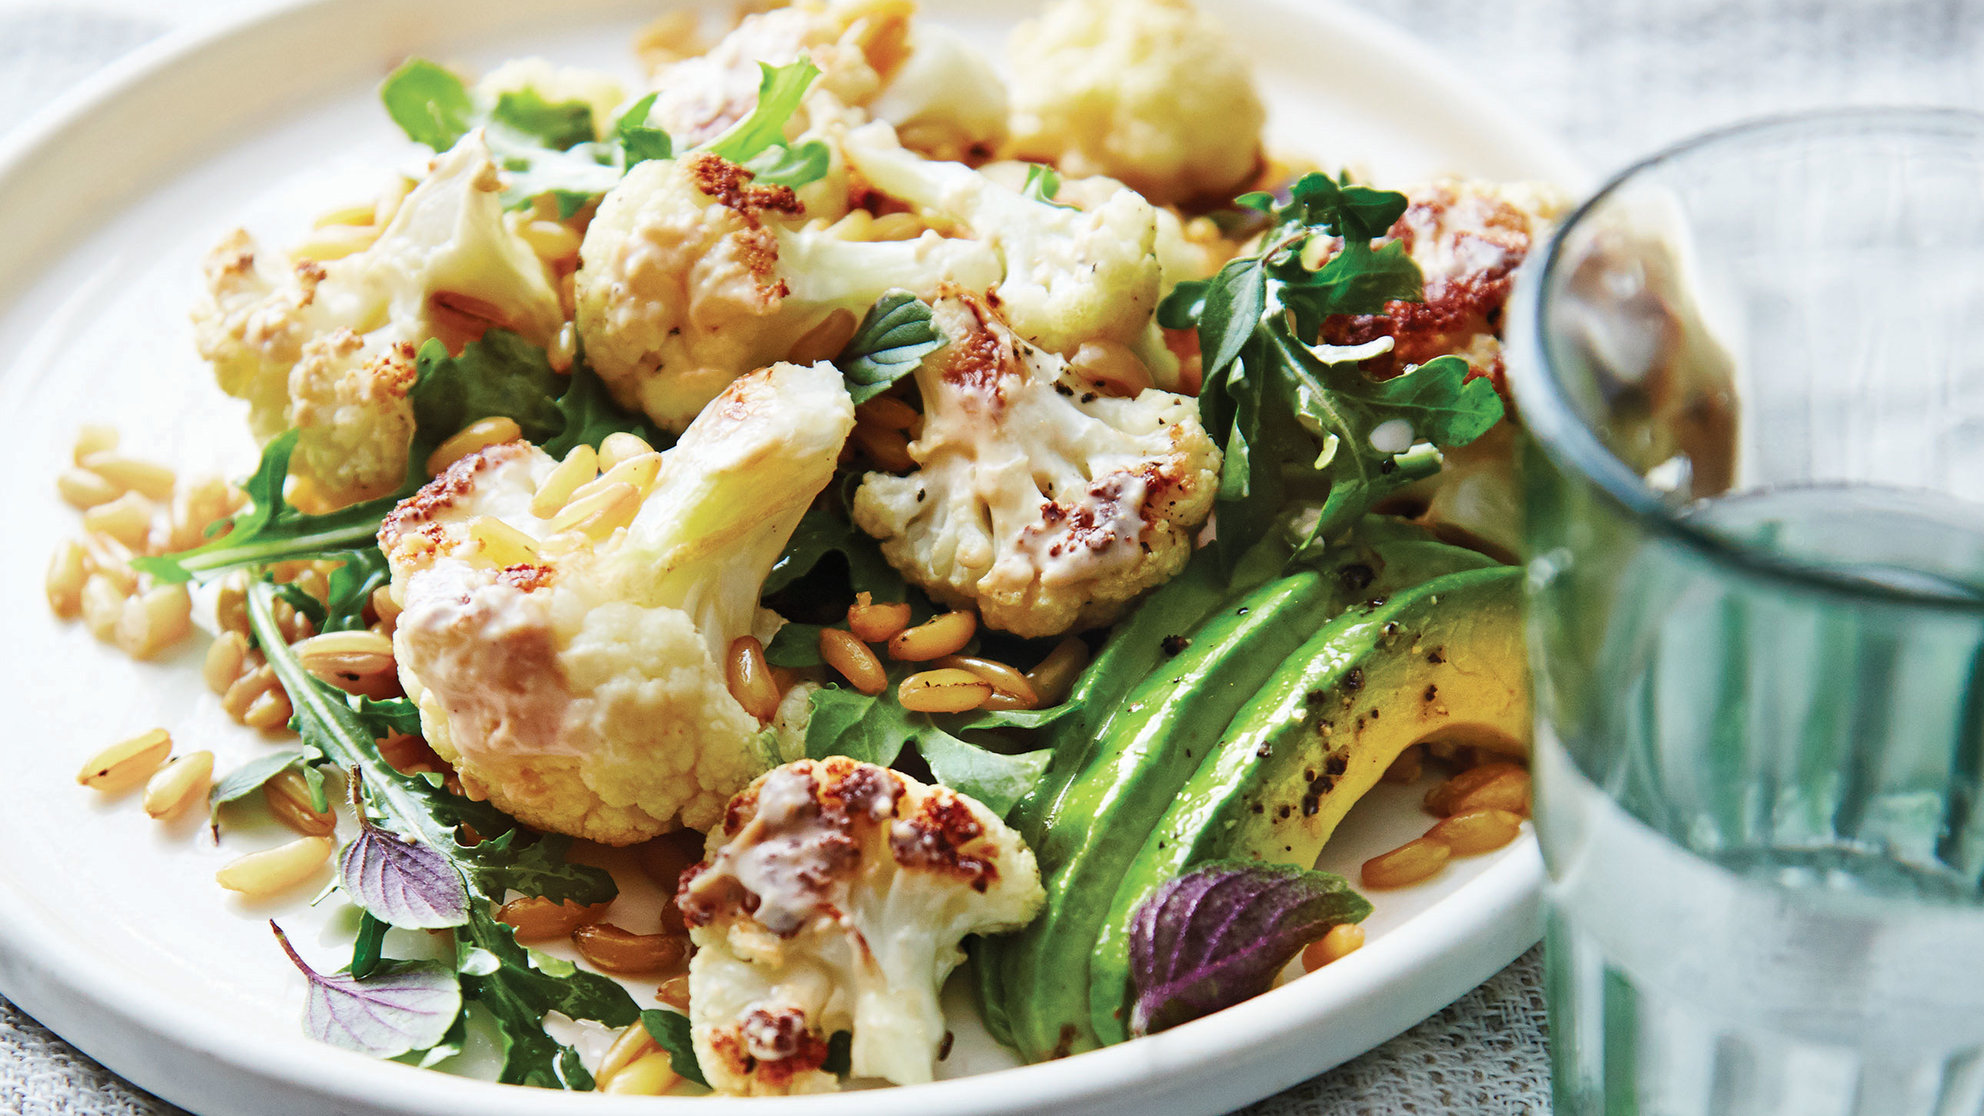 kamut-salad-roasted-cauliflower-avocado-ancient-grains-recipe